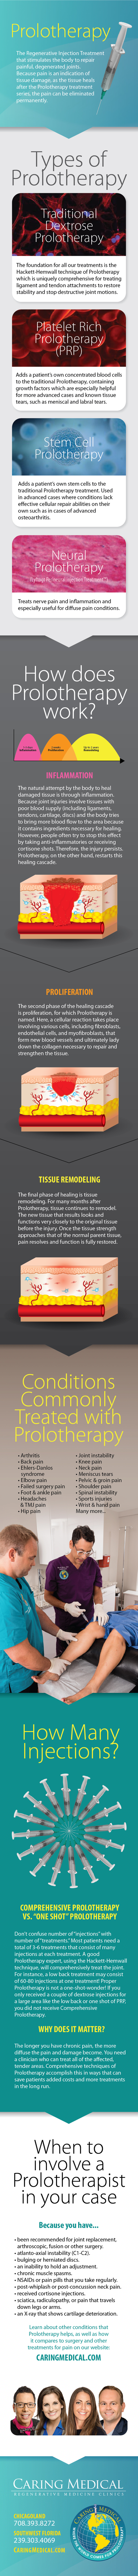 Prolotherapy Infographic